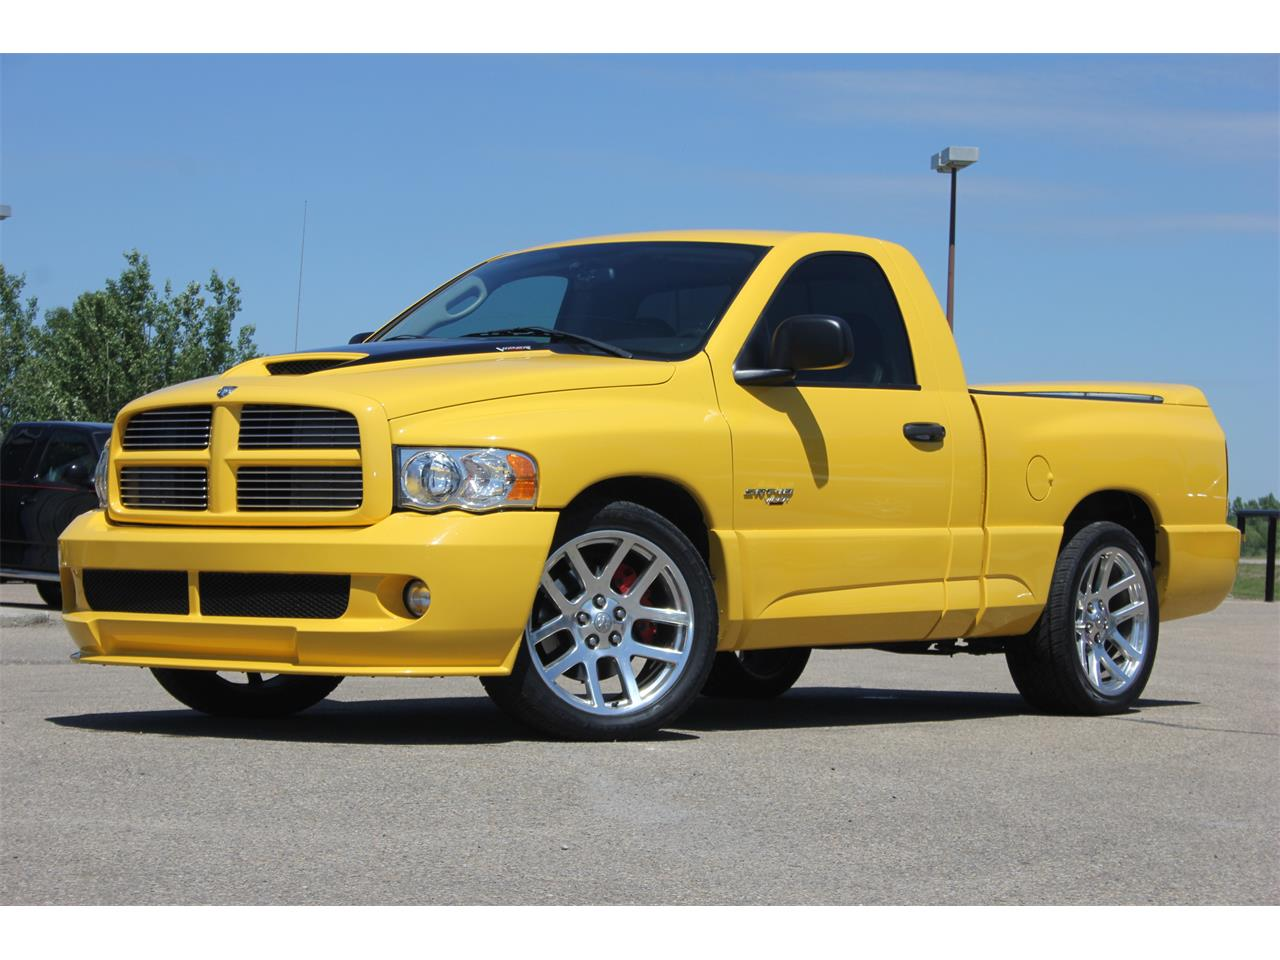 Srt10 For Sale >> For Sale 2005 Dodge Srt10 In Sylvan Lake Alberta